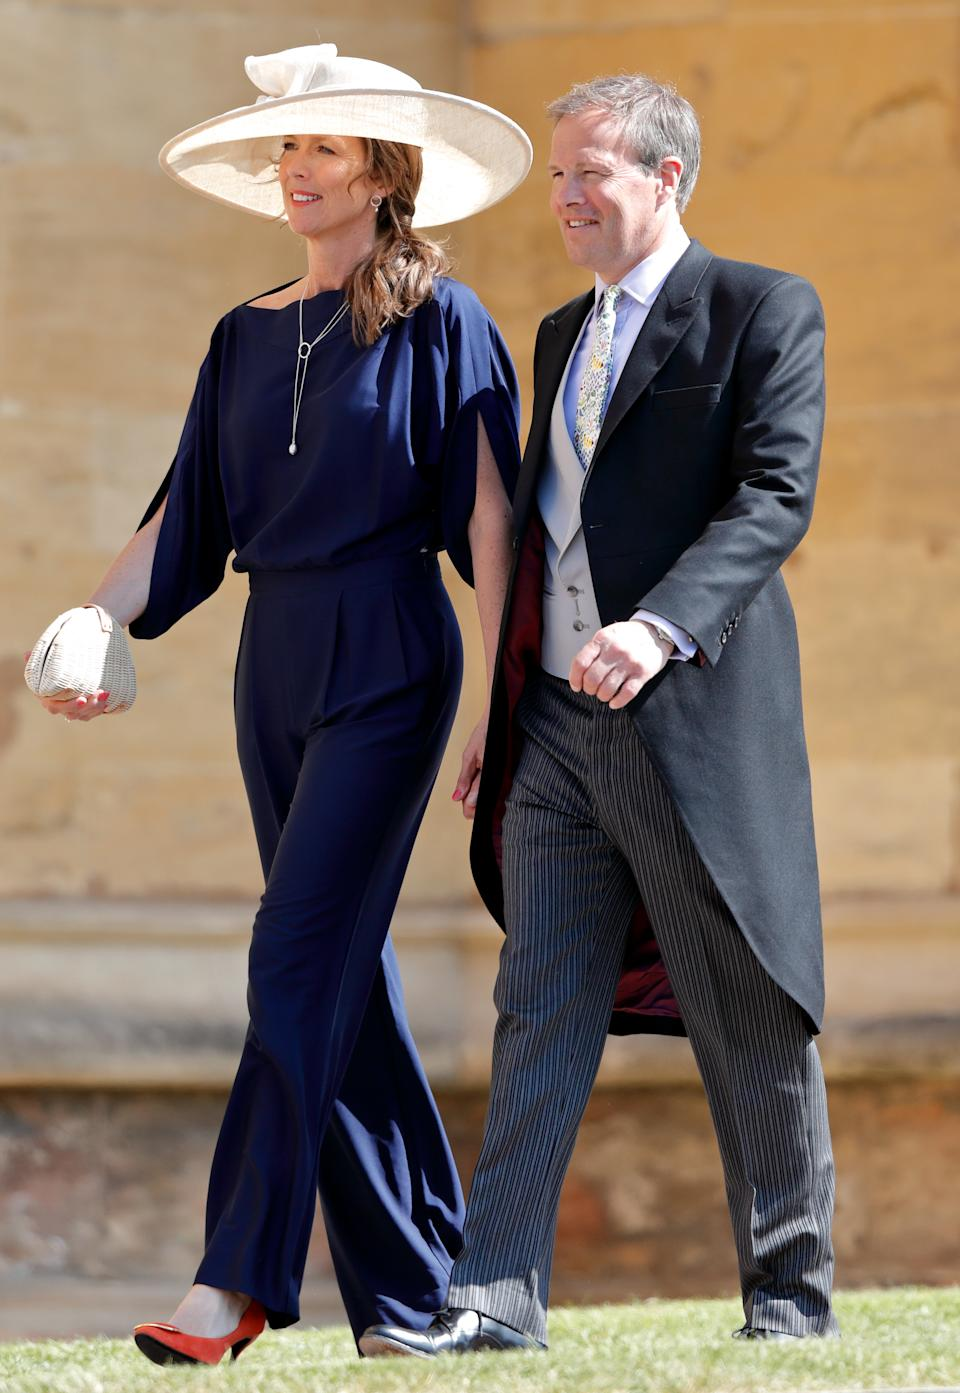 WINDSOR, UNITED KINGDOM - MAY 19: (EMBARGOED FOR PUBLICATION IN UK NEWSPAPERS UNTIL 24 HOURS AFTER CREATE DATE AND TIME) Claudia Bradby and Tom Bradby attend the wedding of Prince Harry to Ms Meghan Markle at St George's Chapel, Windsor Castle on May 19, 2018 in Windsor, England. Prince Henry Charles Albert David of Wales marries Ms. Meghan Markle in a service at St George's Chapel inside the grounds of Windsor Castle. Among the guests were 2200 members of the public, the royal family and Ms. Markle's Mother Doria Ragland. (Photo by Max Mumby/Indigo/Getty Images)